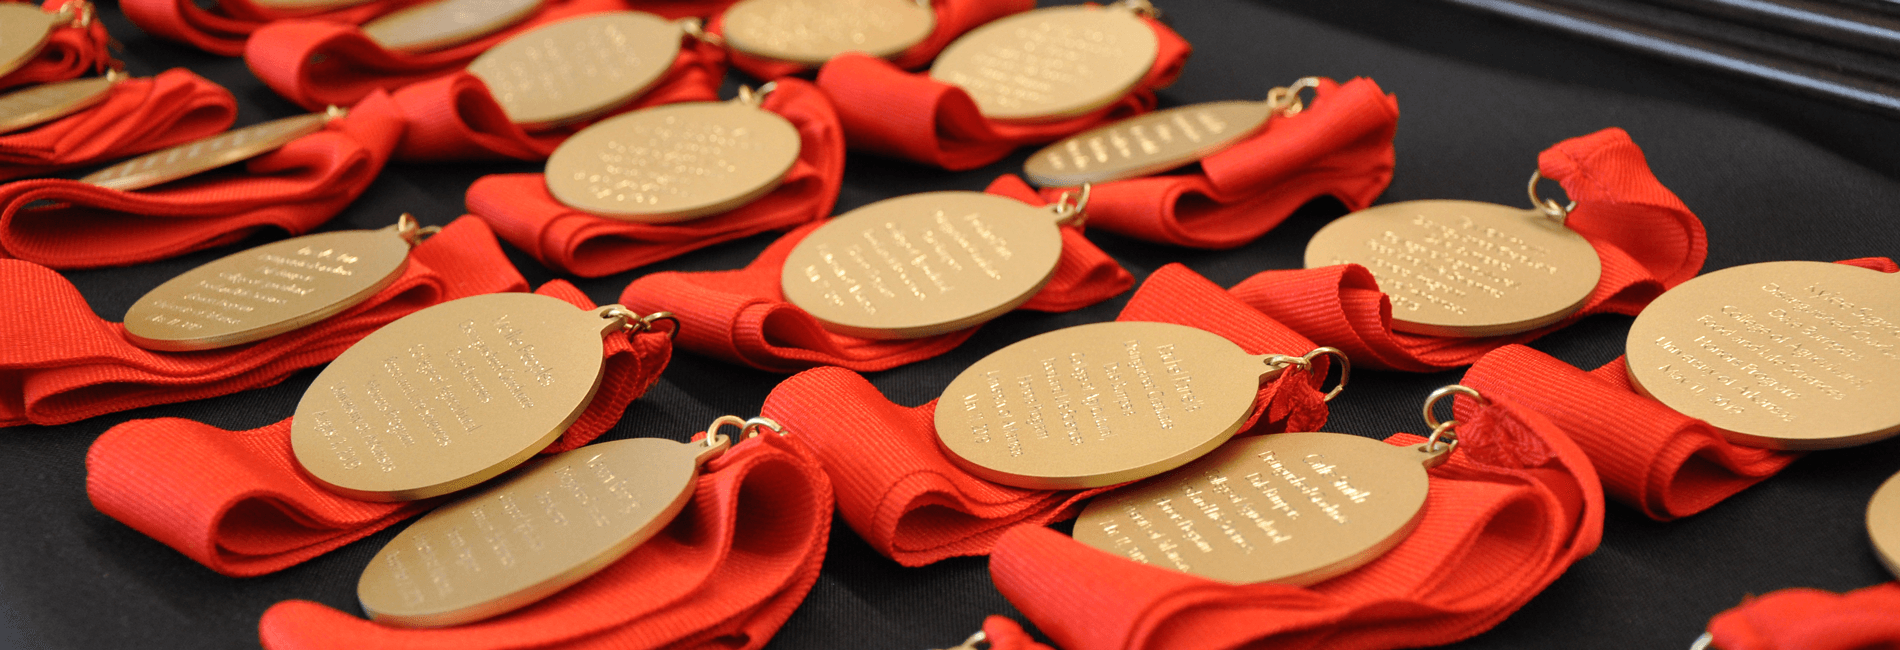 Gold medals with red ribbons lined up on a table for the 2019 Honors and Awards Banquet.